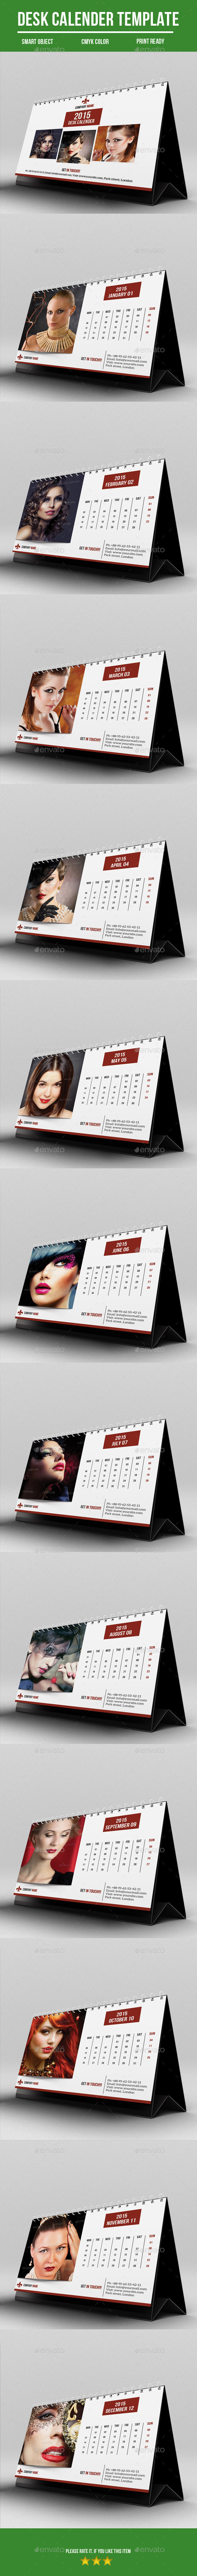 GraphicRiver Desk Calender For 2015 9818077